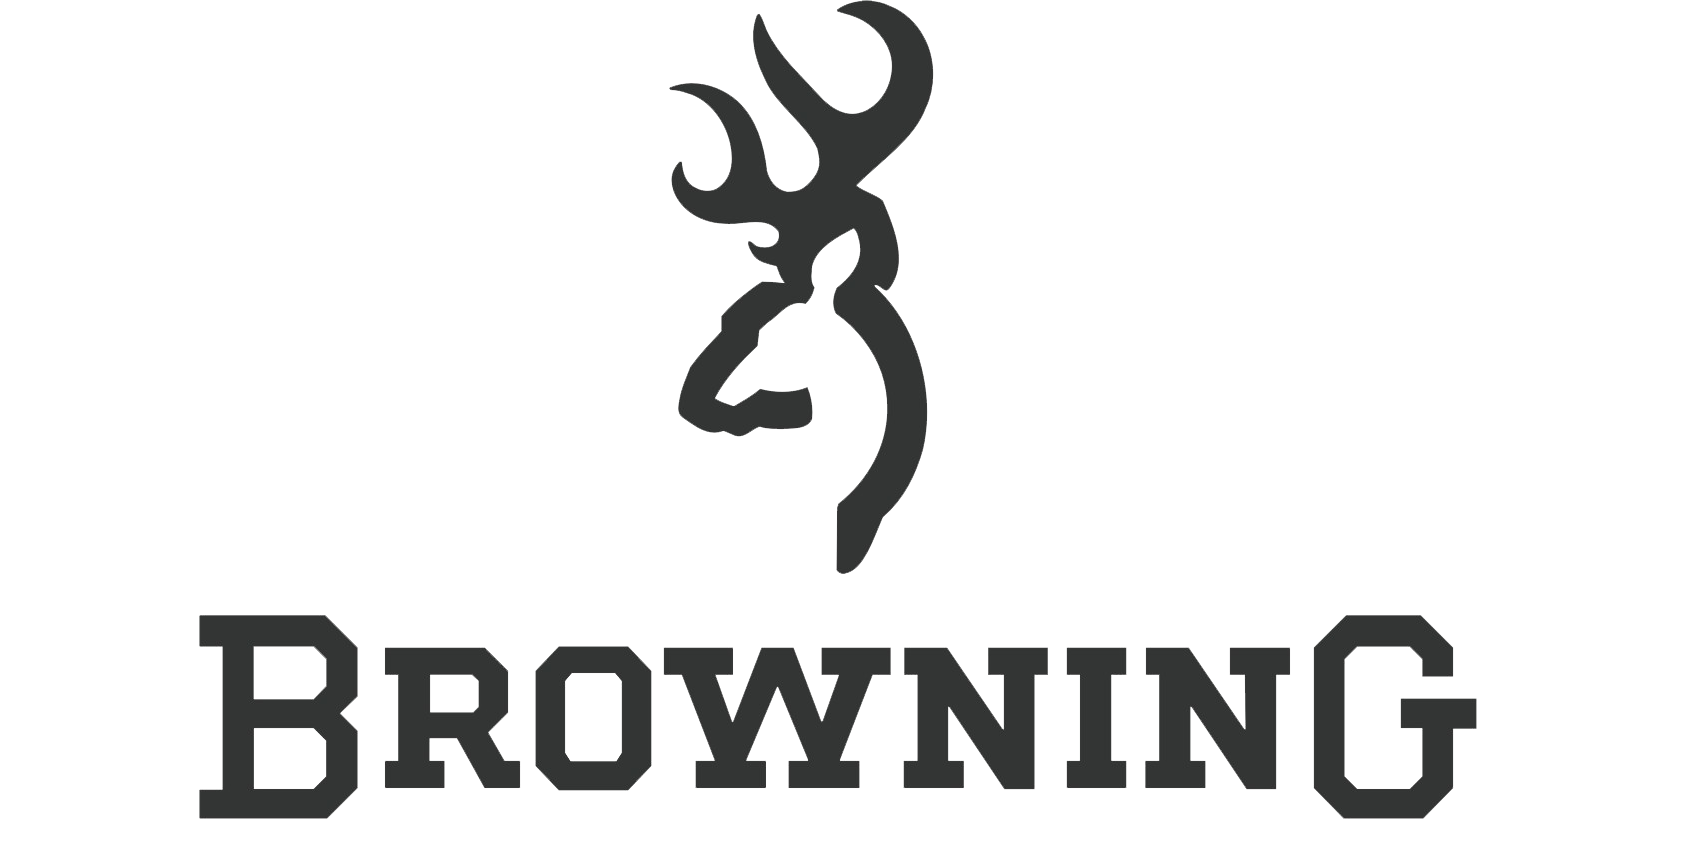 Browning logo browning symbol meaning history and evolution browning logo biocorpaavc Choice Image